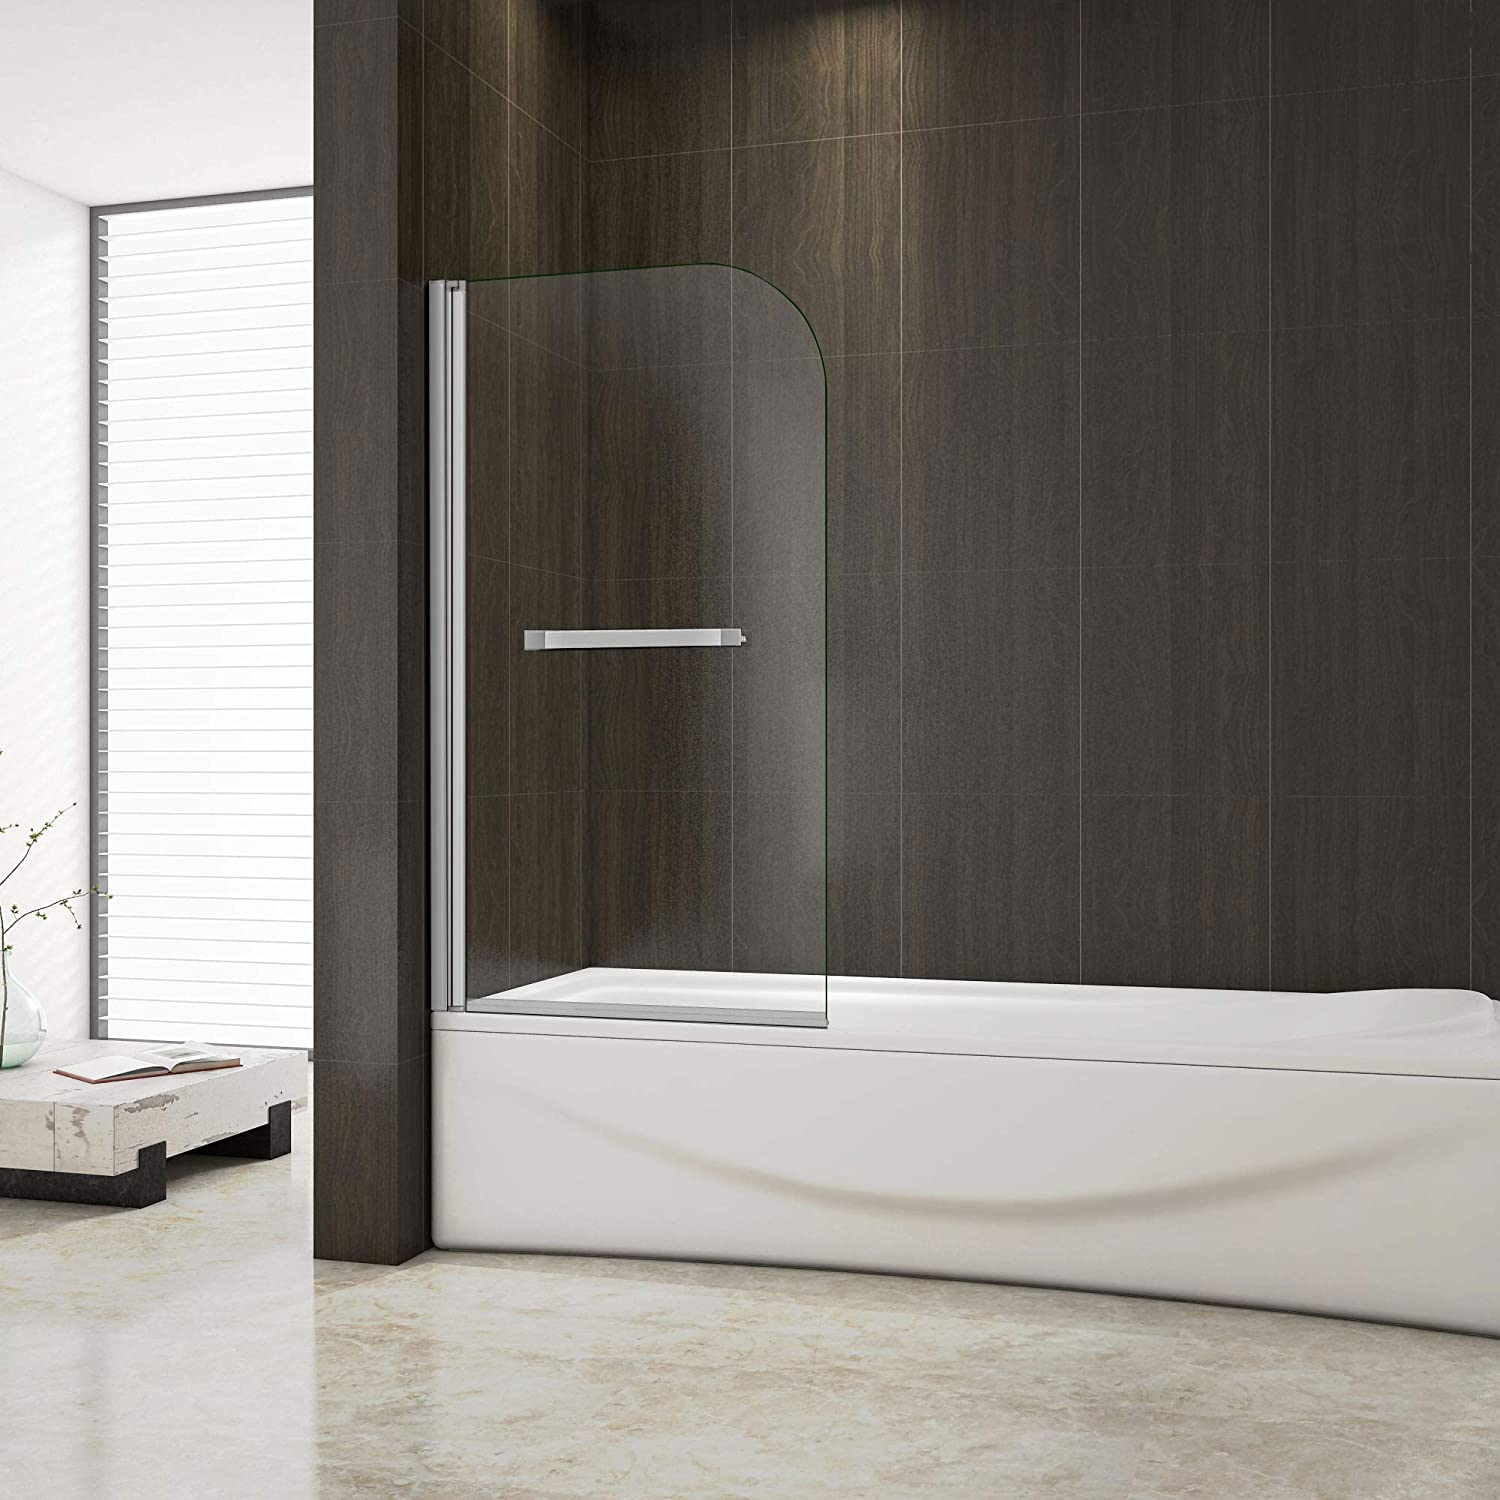 Aica Bathrooms 800mm Bath 180°Pivot Shower Screen Glass Panel with Handle, aluminum Electroplating White, 800x1400mm